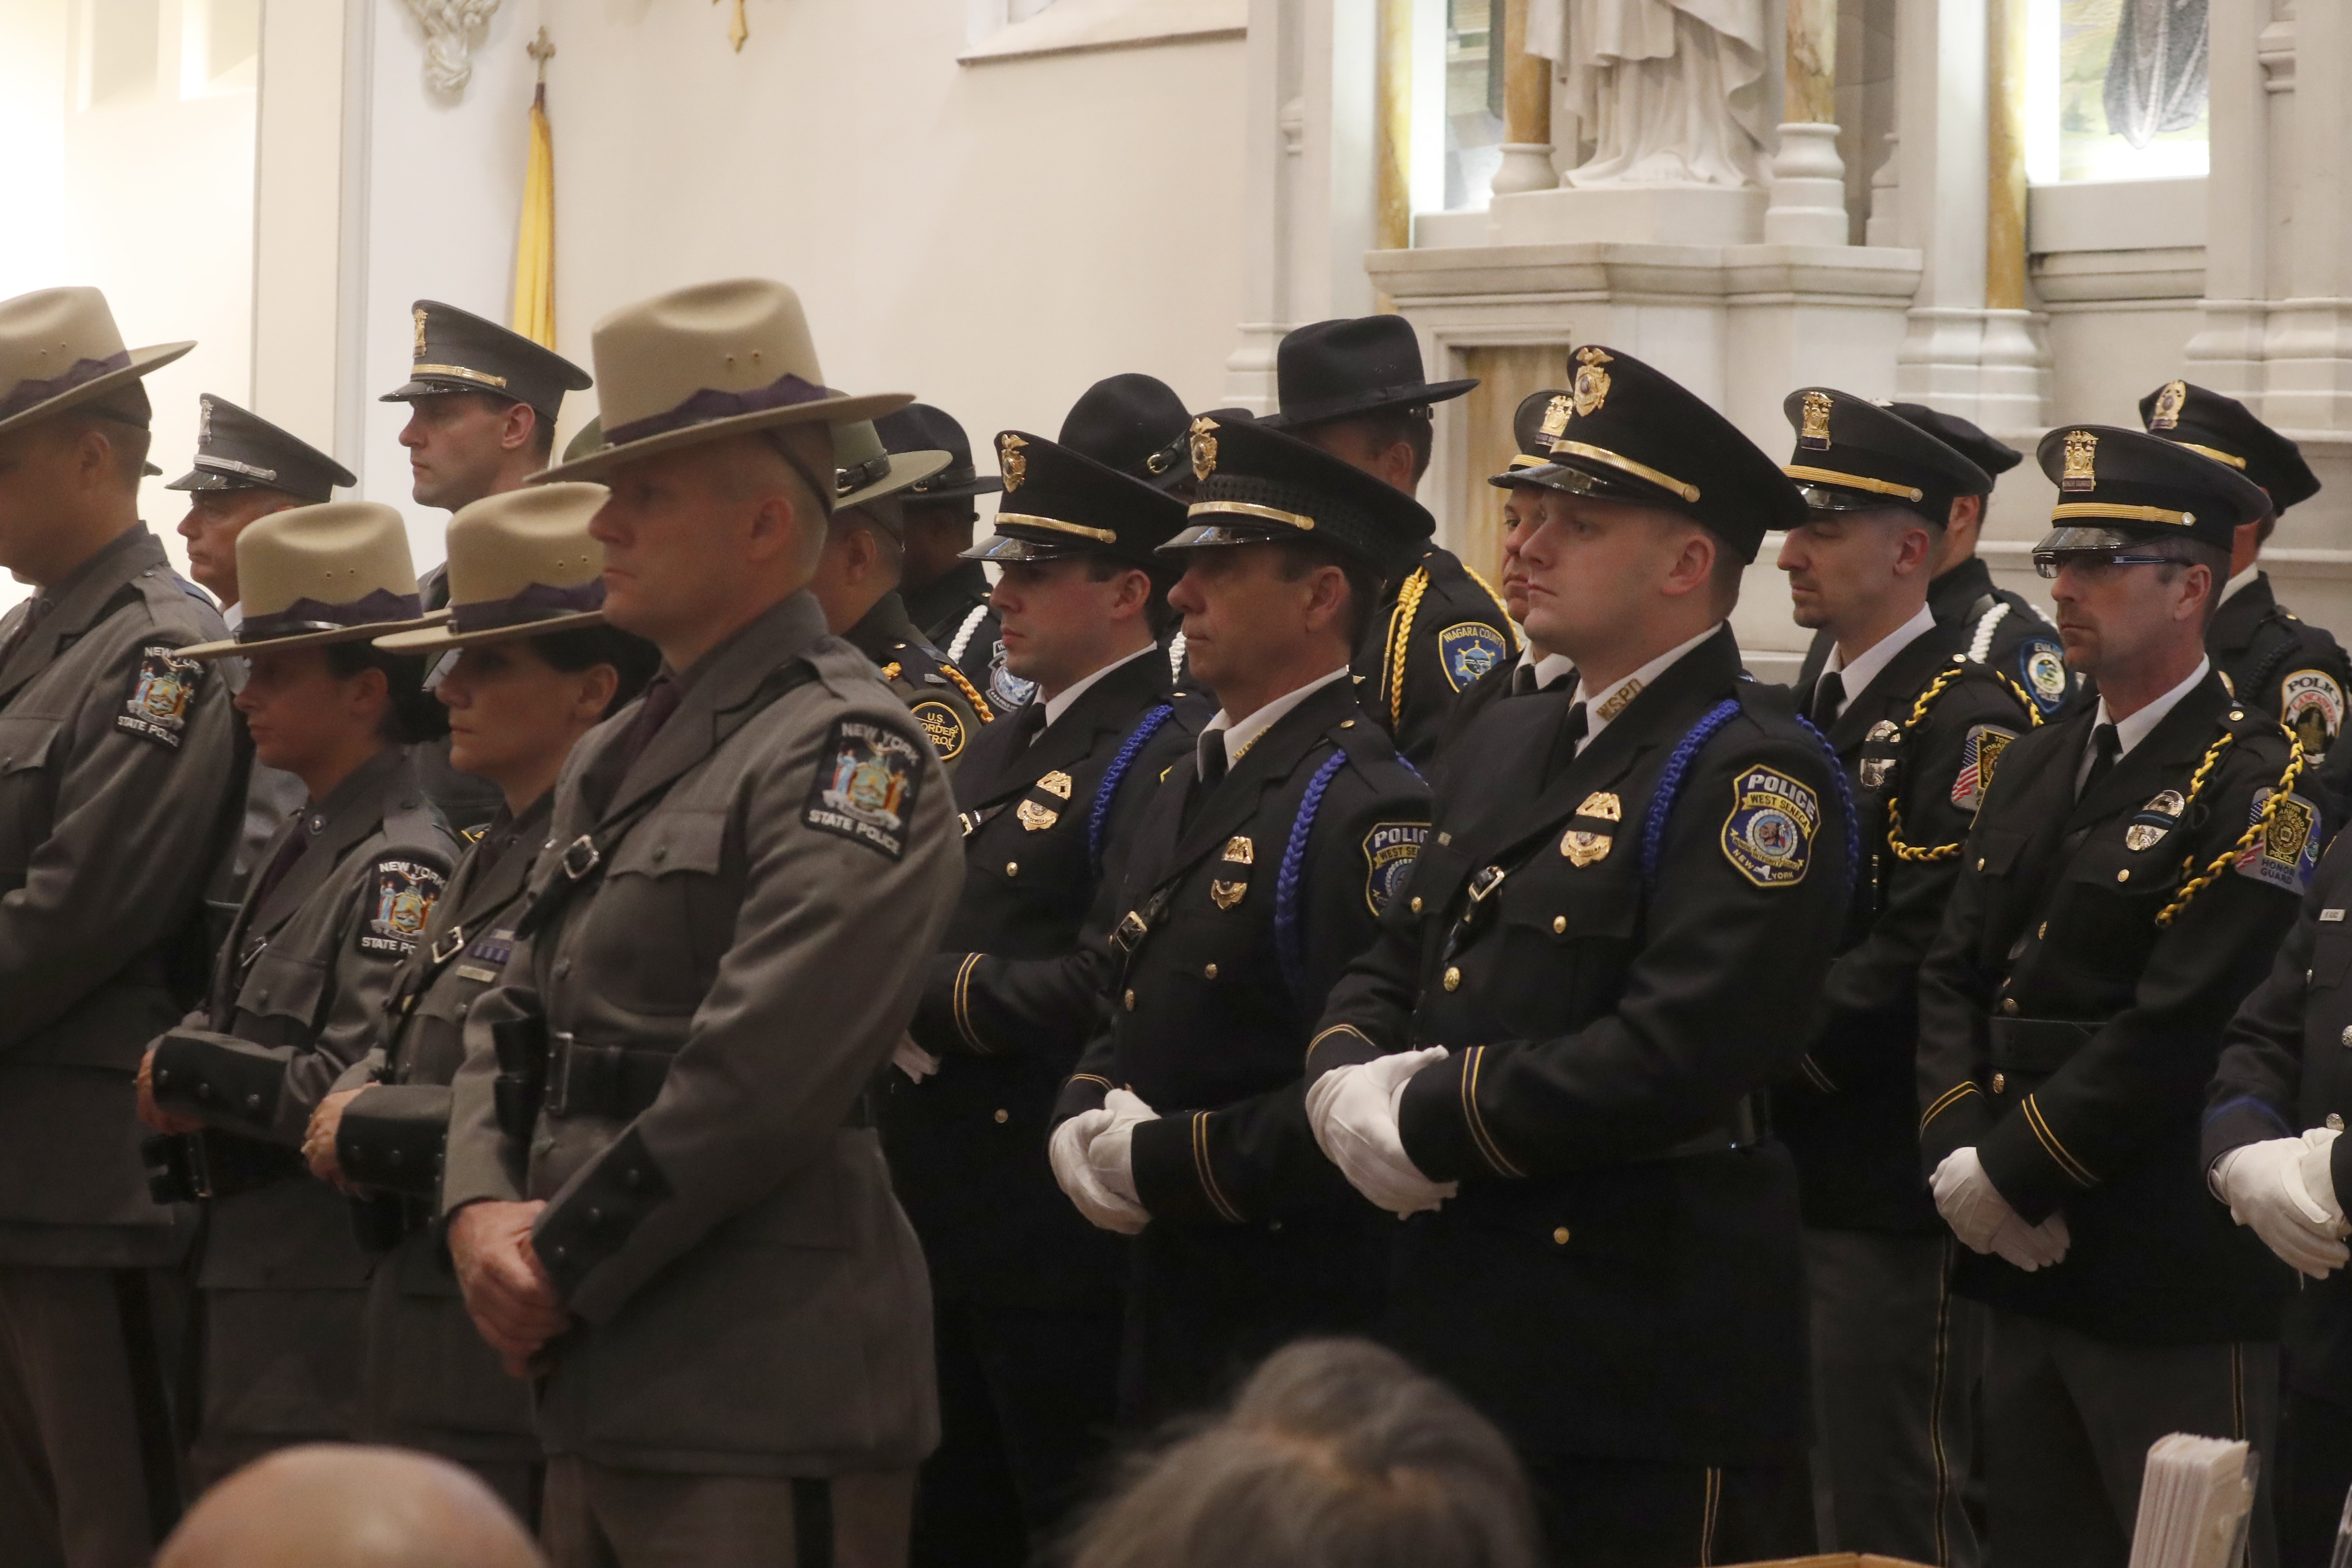 Law enforcement officers attend a Law Enforcement Memorial Service at St. Joseph's Cathedral in Buffalo on  Monday May 15, 2017 to honor slain officers.  (John Hickey/Buffalo News)